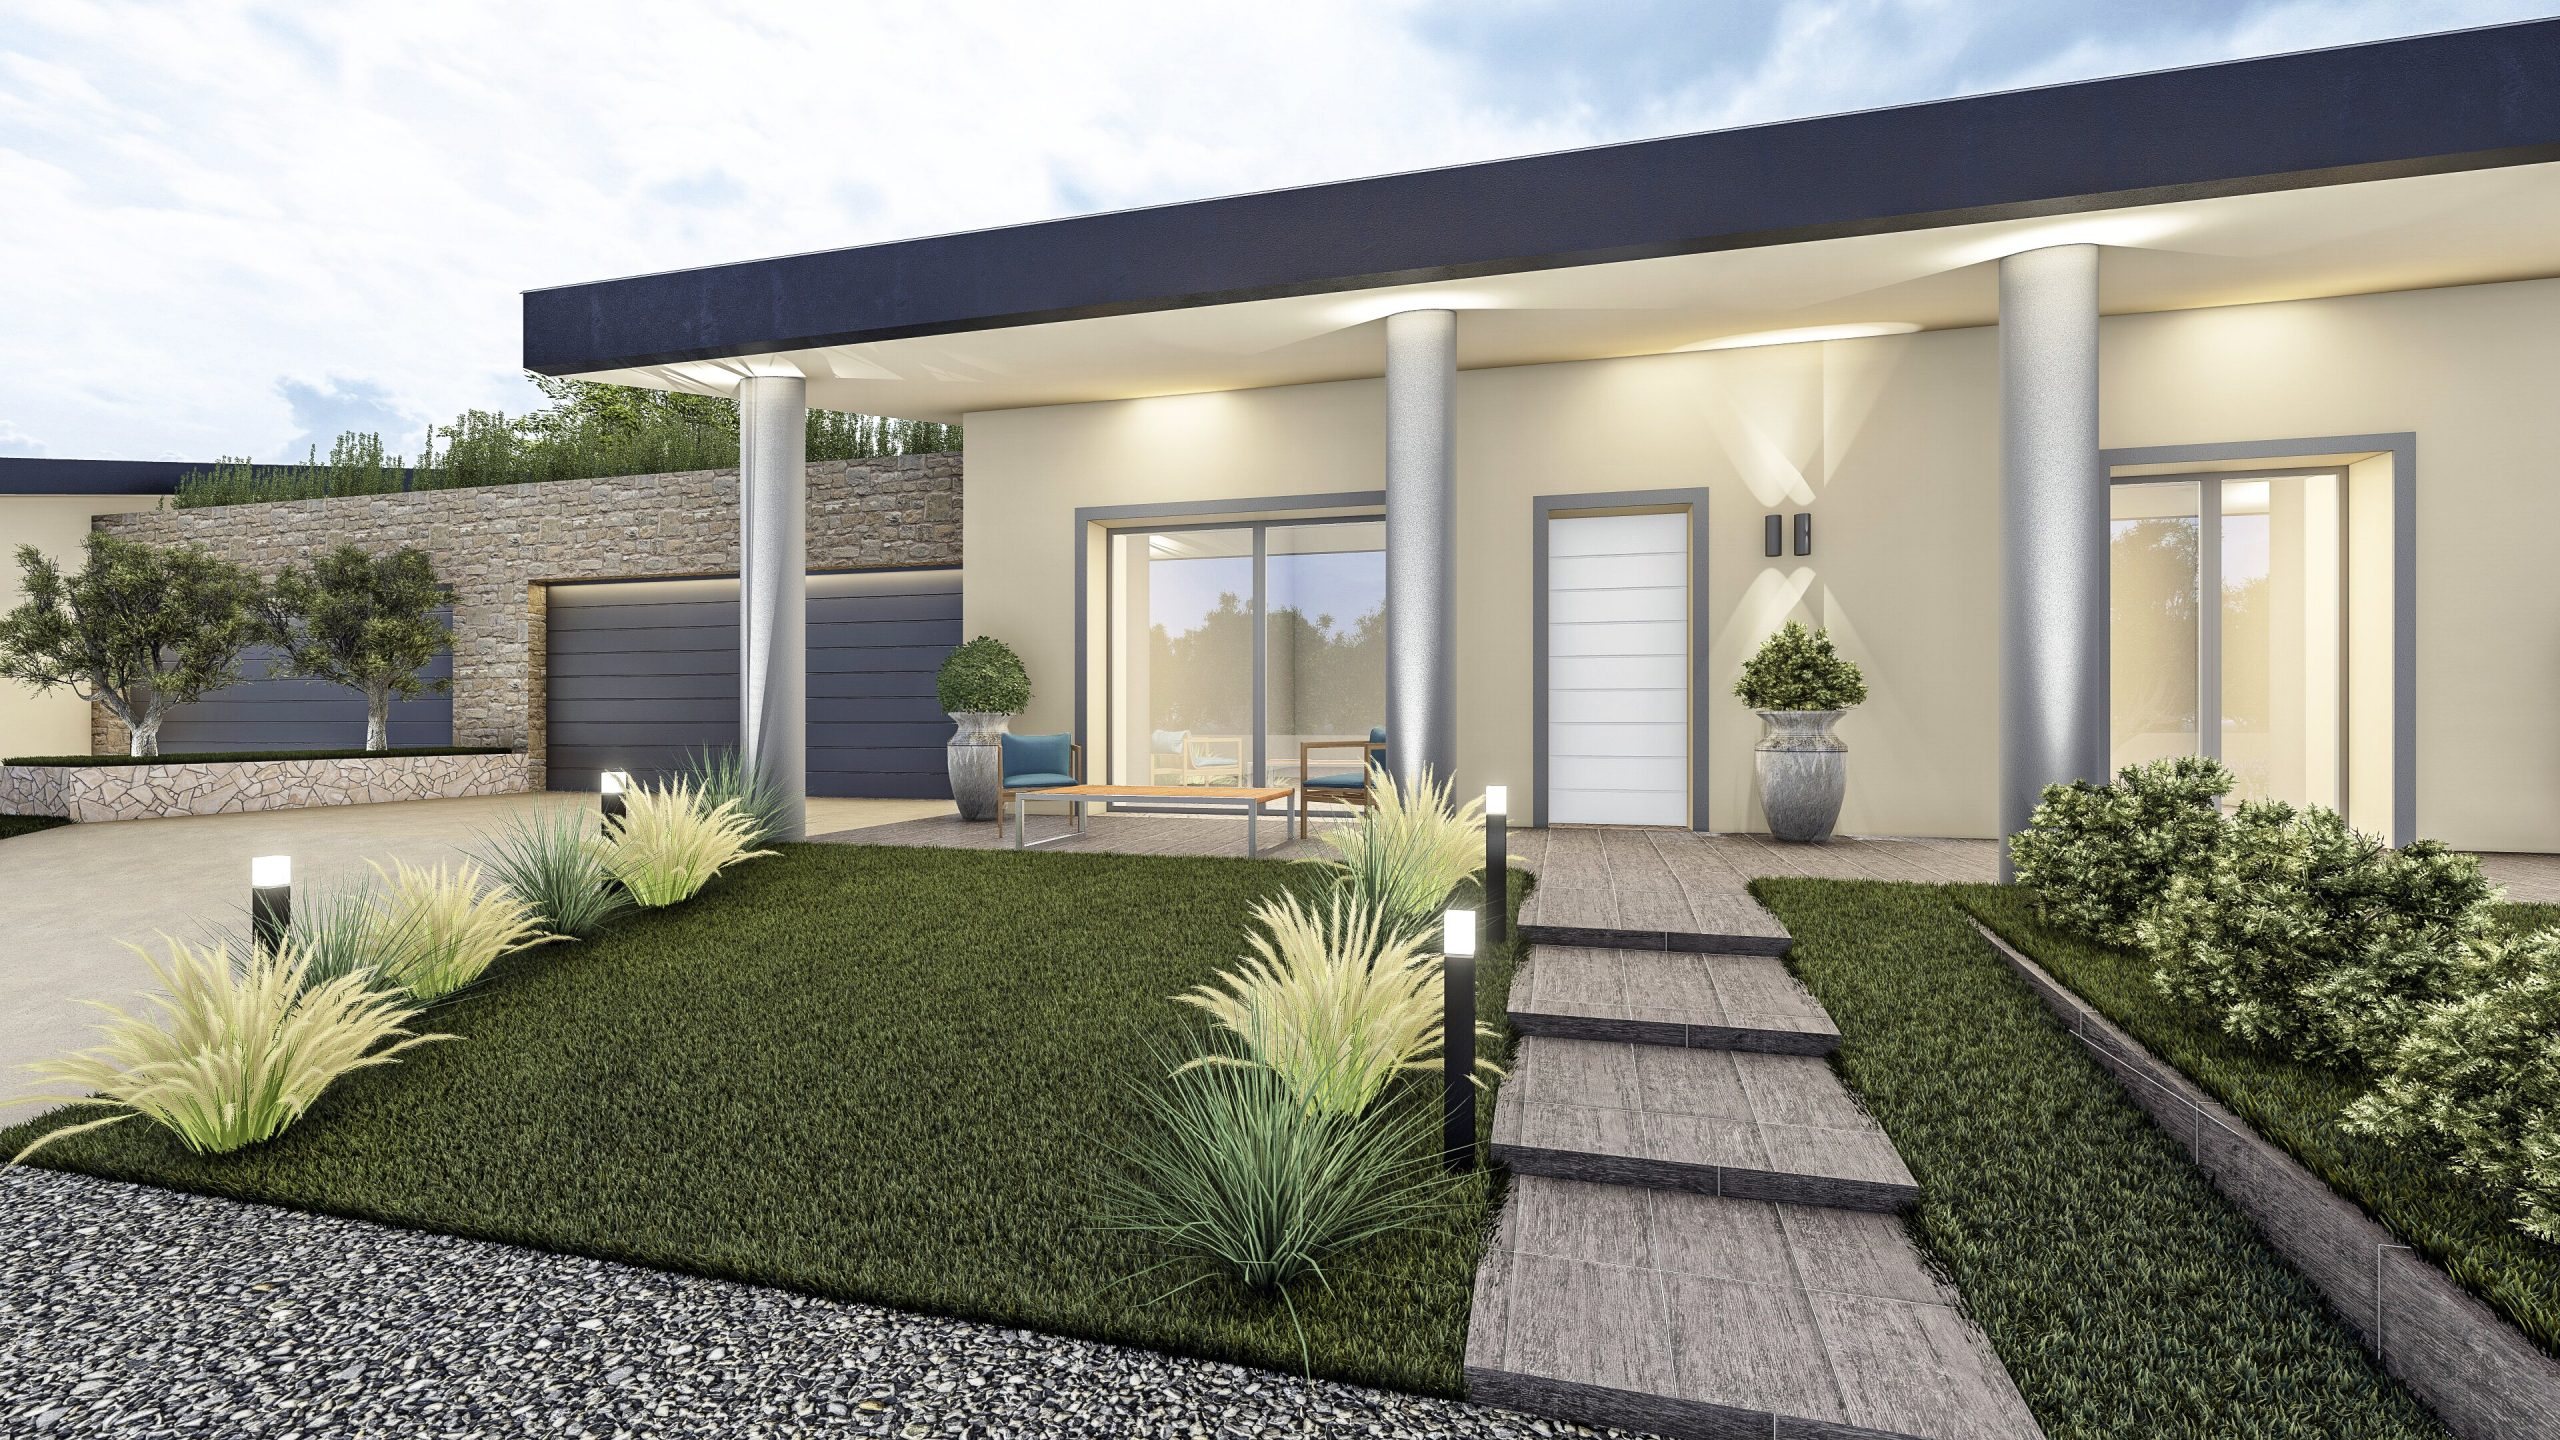 render 3d outdoor